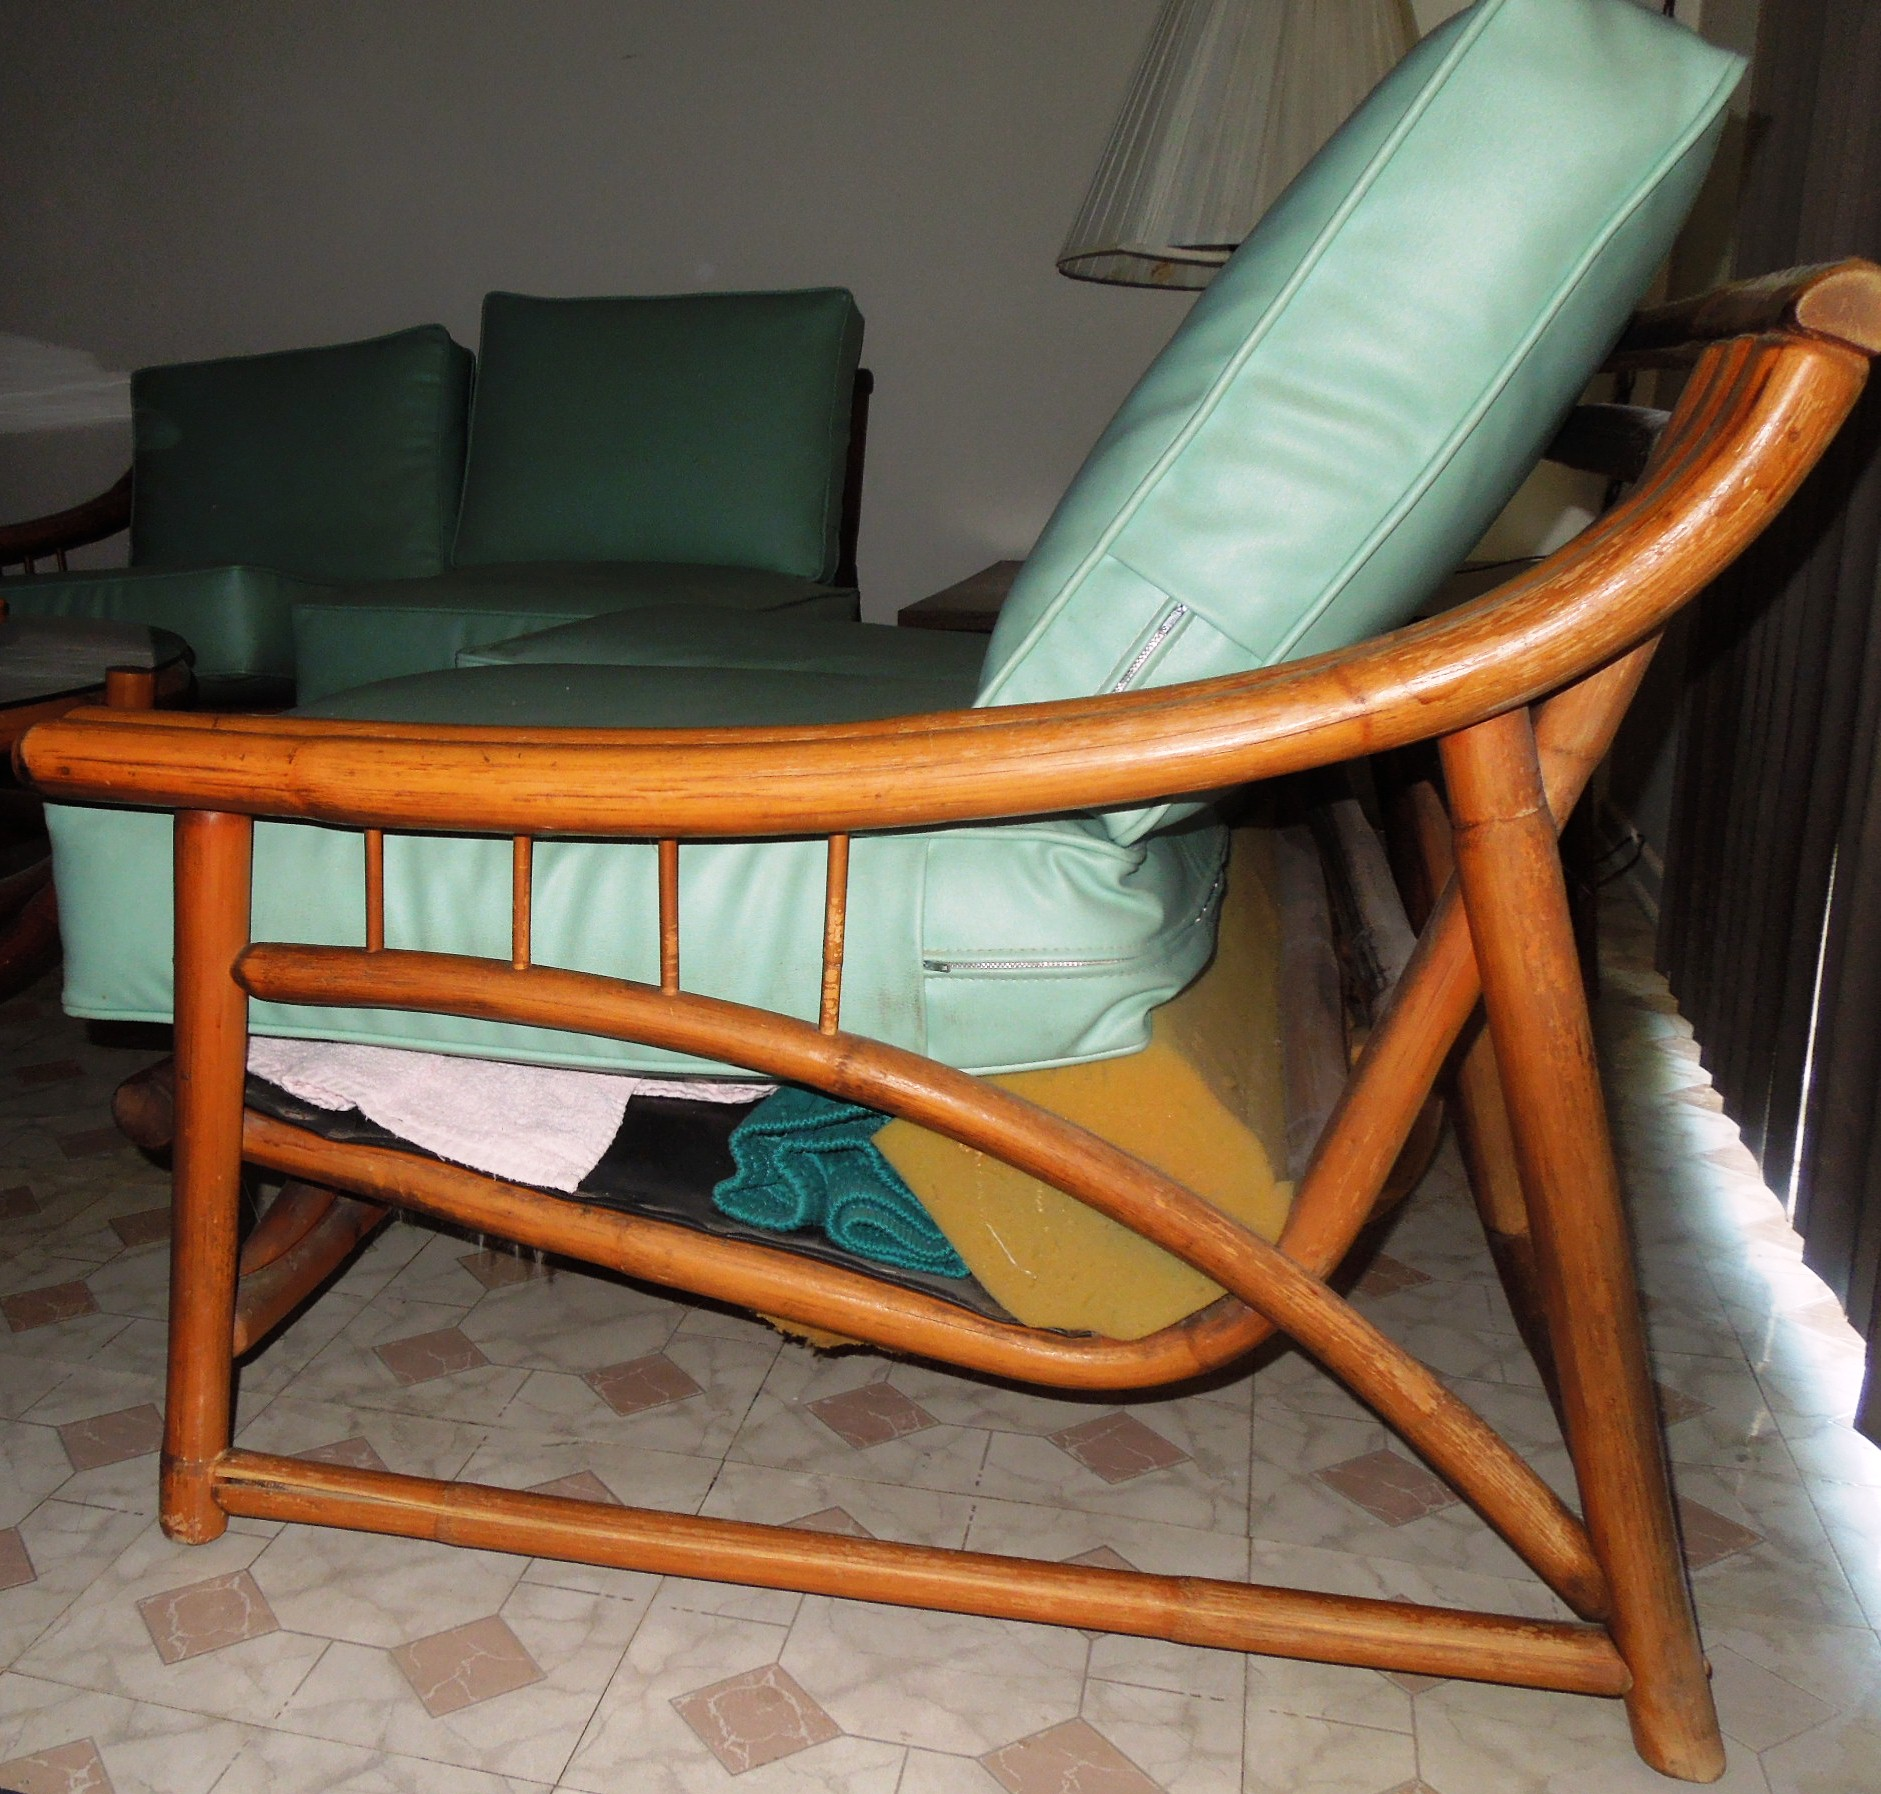 1960s Vintage BAMBOO & Vinyl RETRO Living Room Furniture